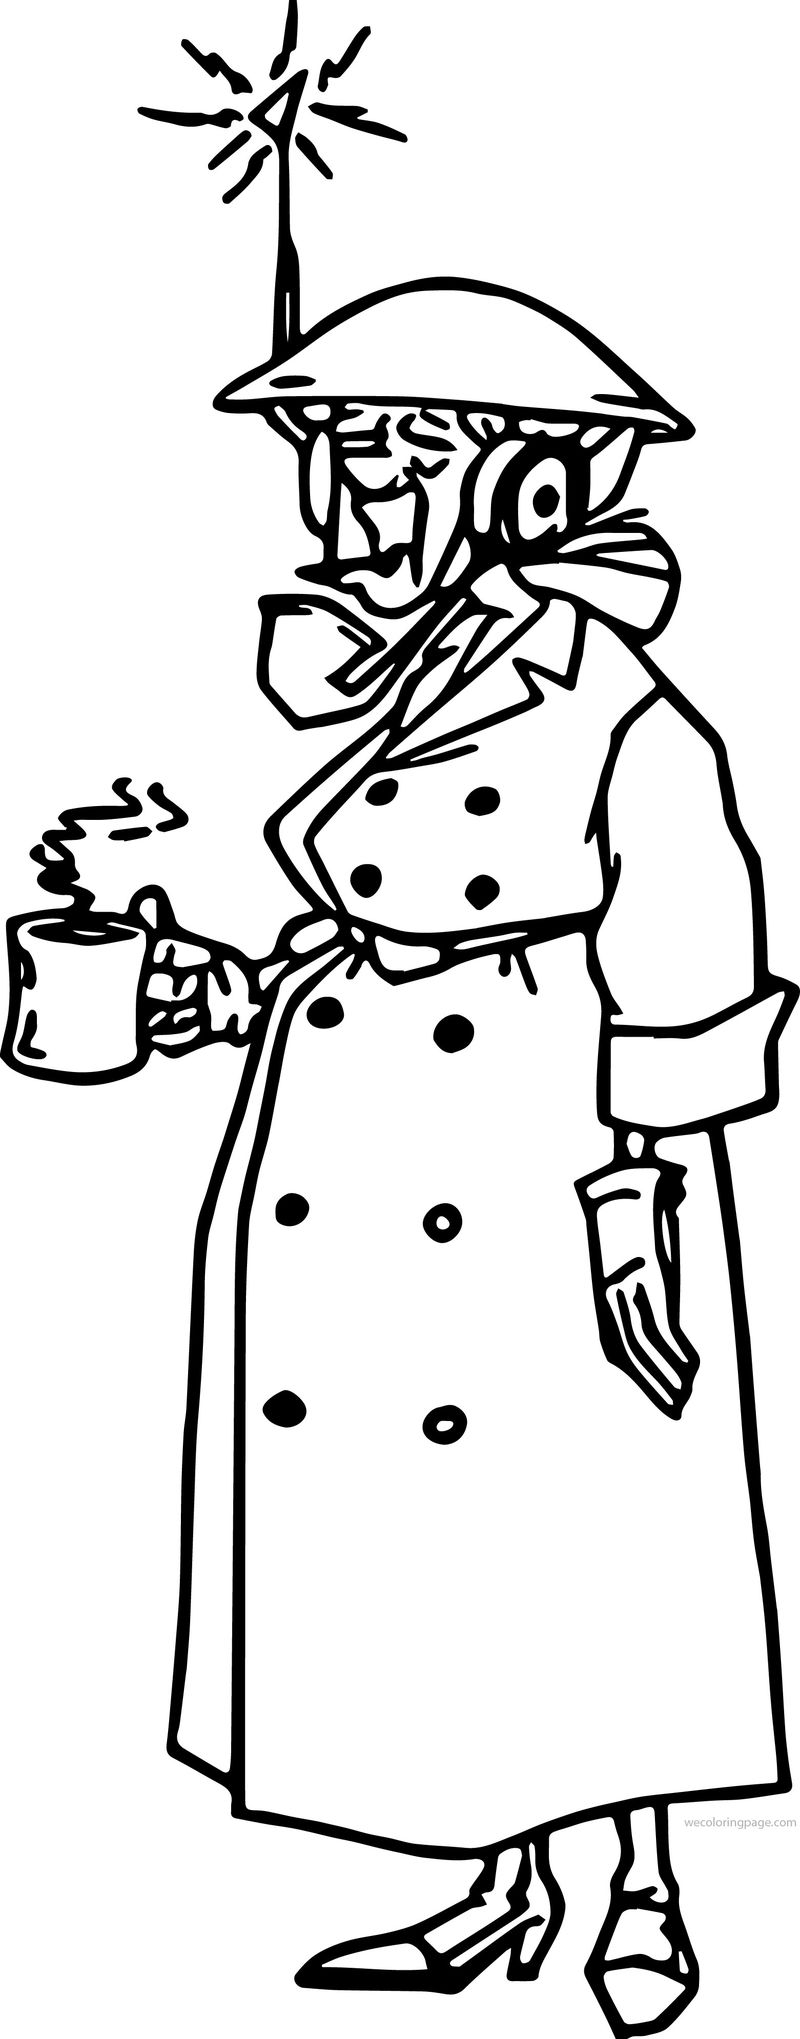 Atlantis The Lost Empire Packard Drinking Coffee Coloring Page